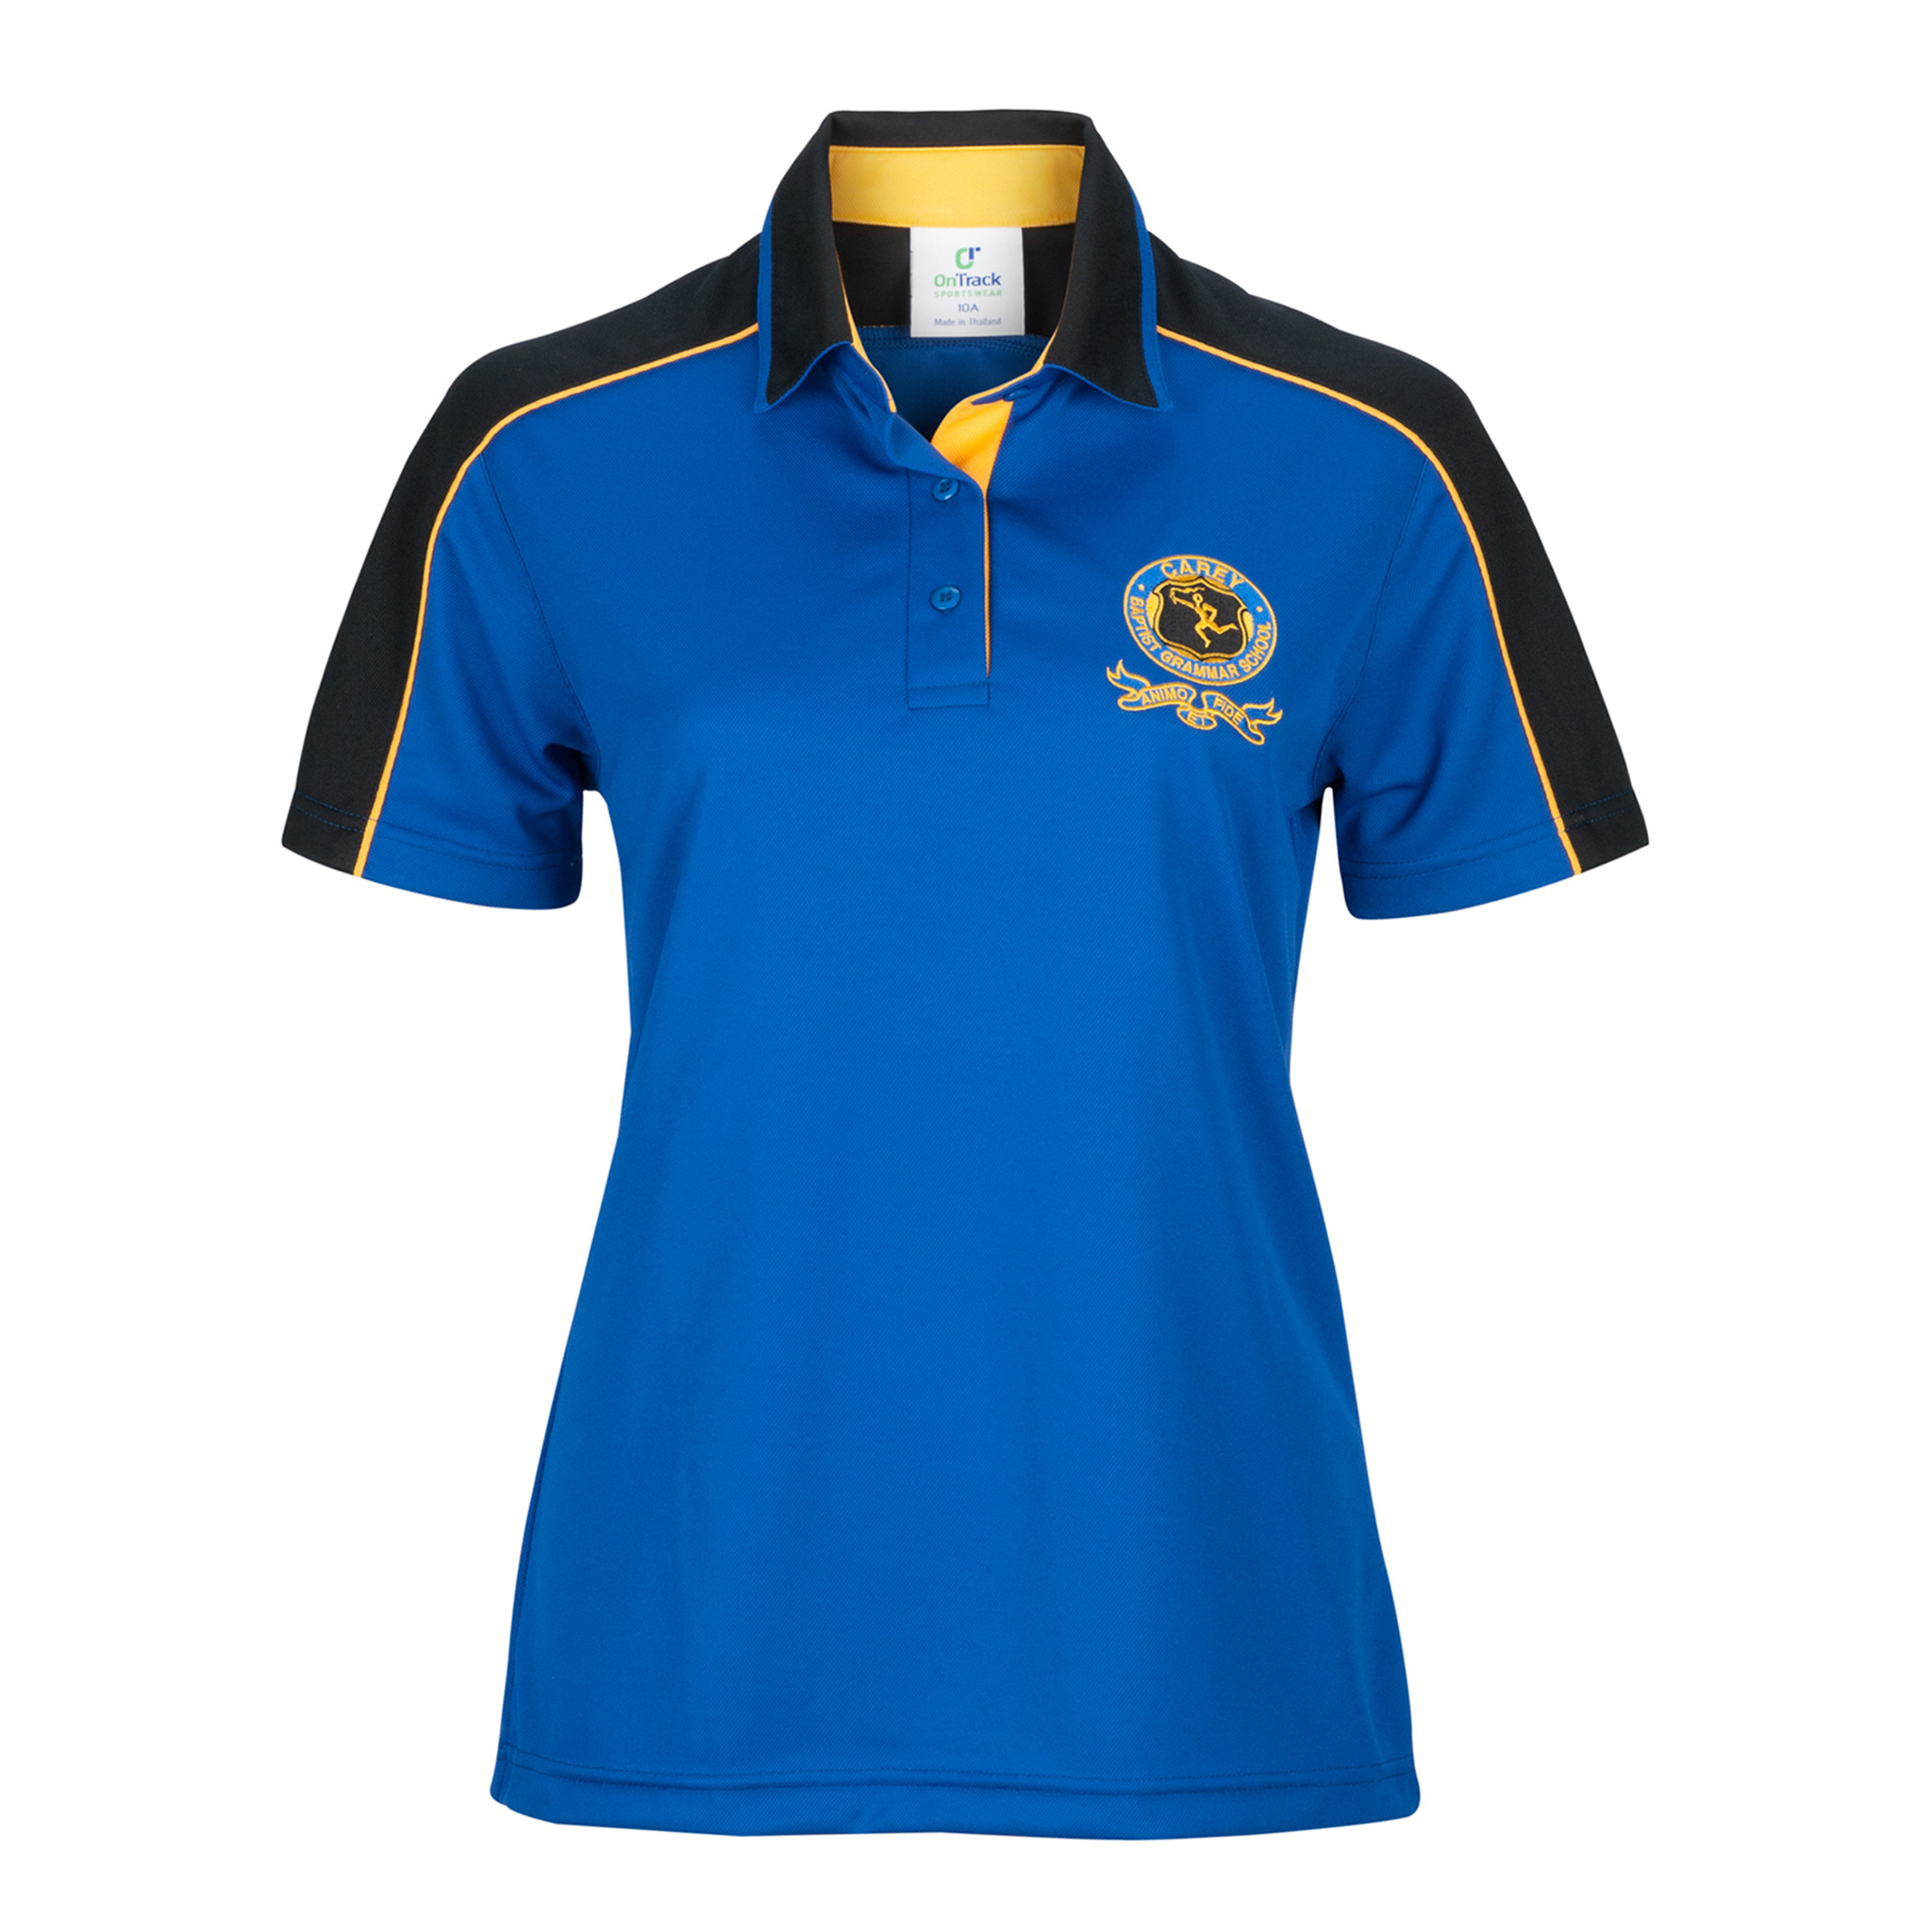 Women's Hi-Tech Polo